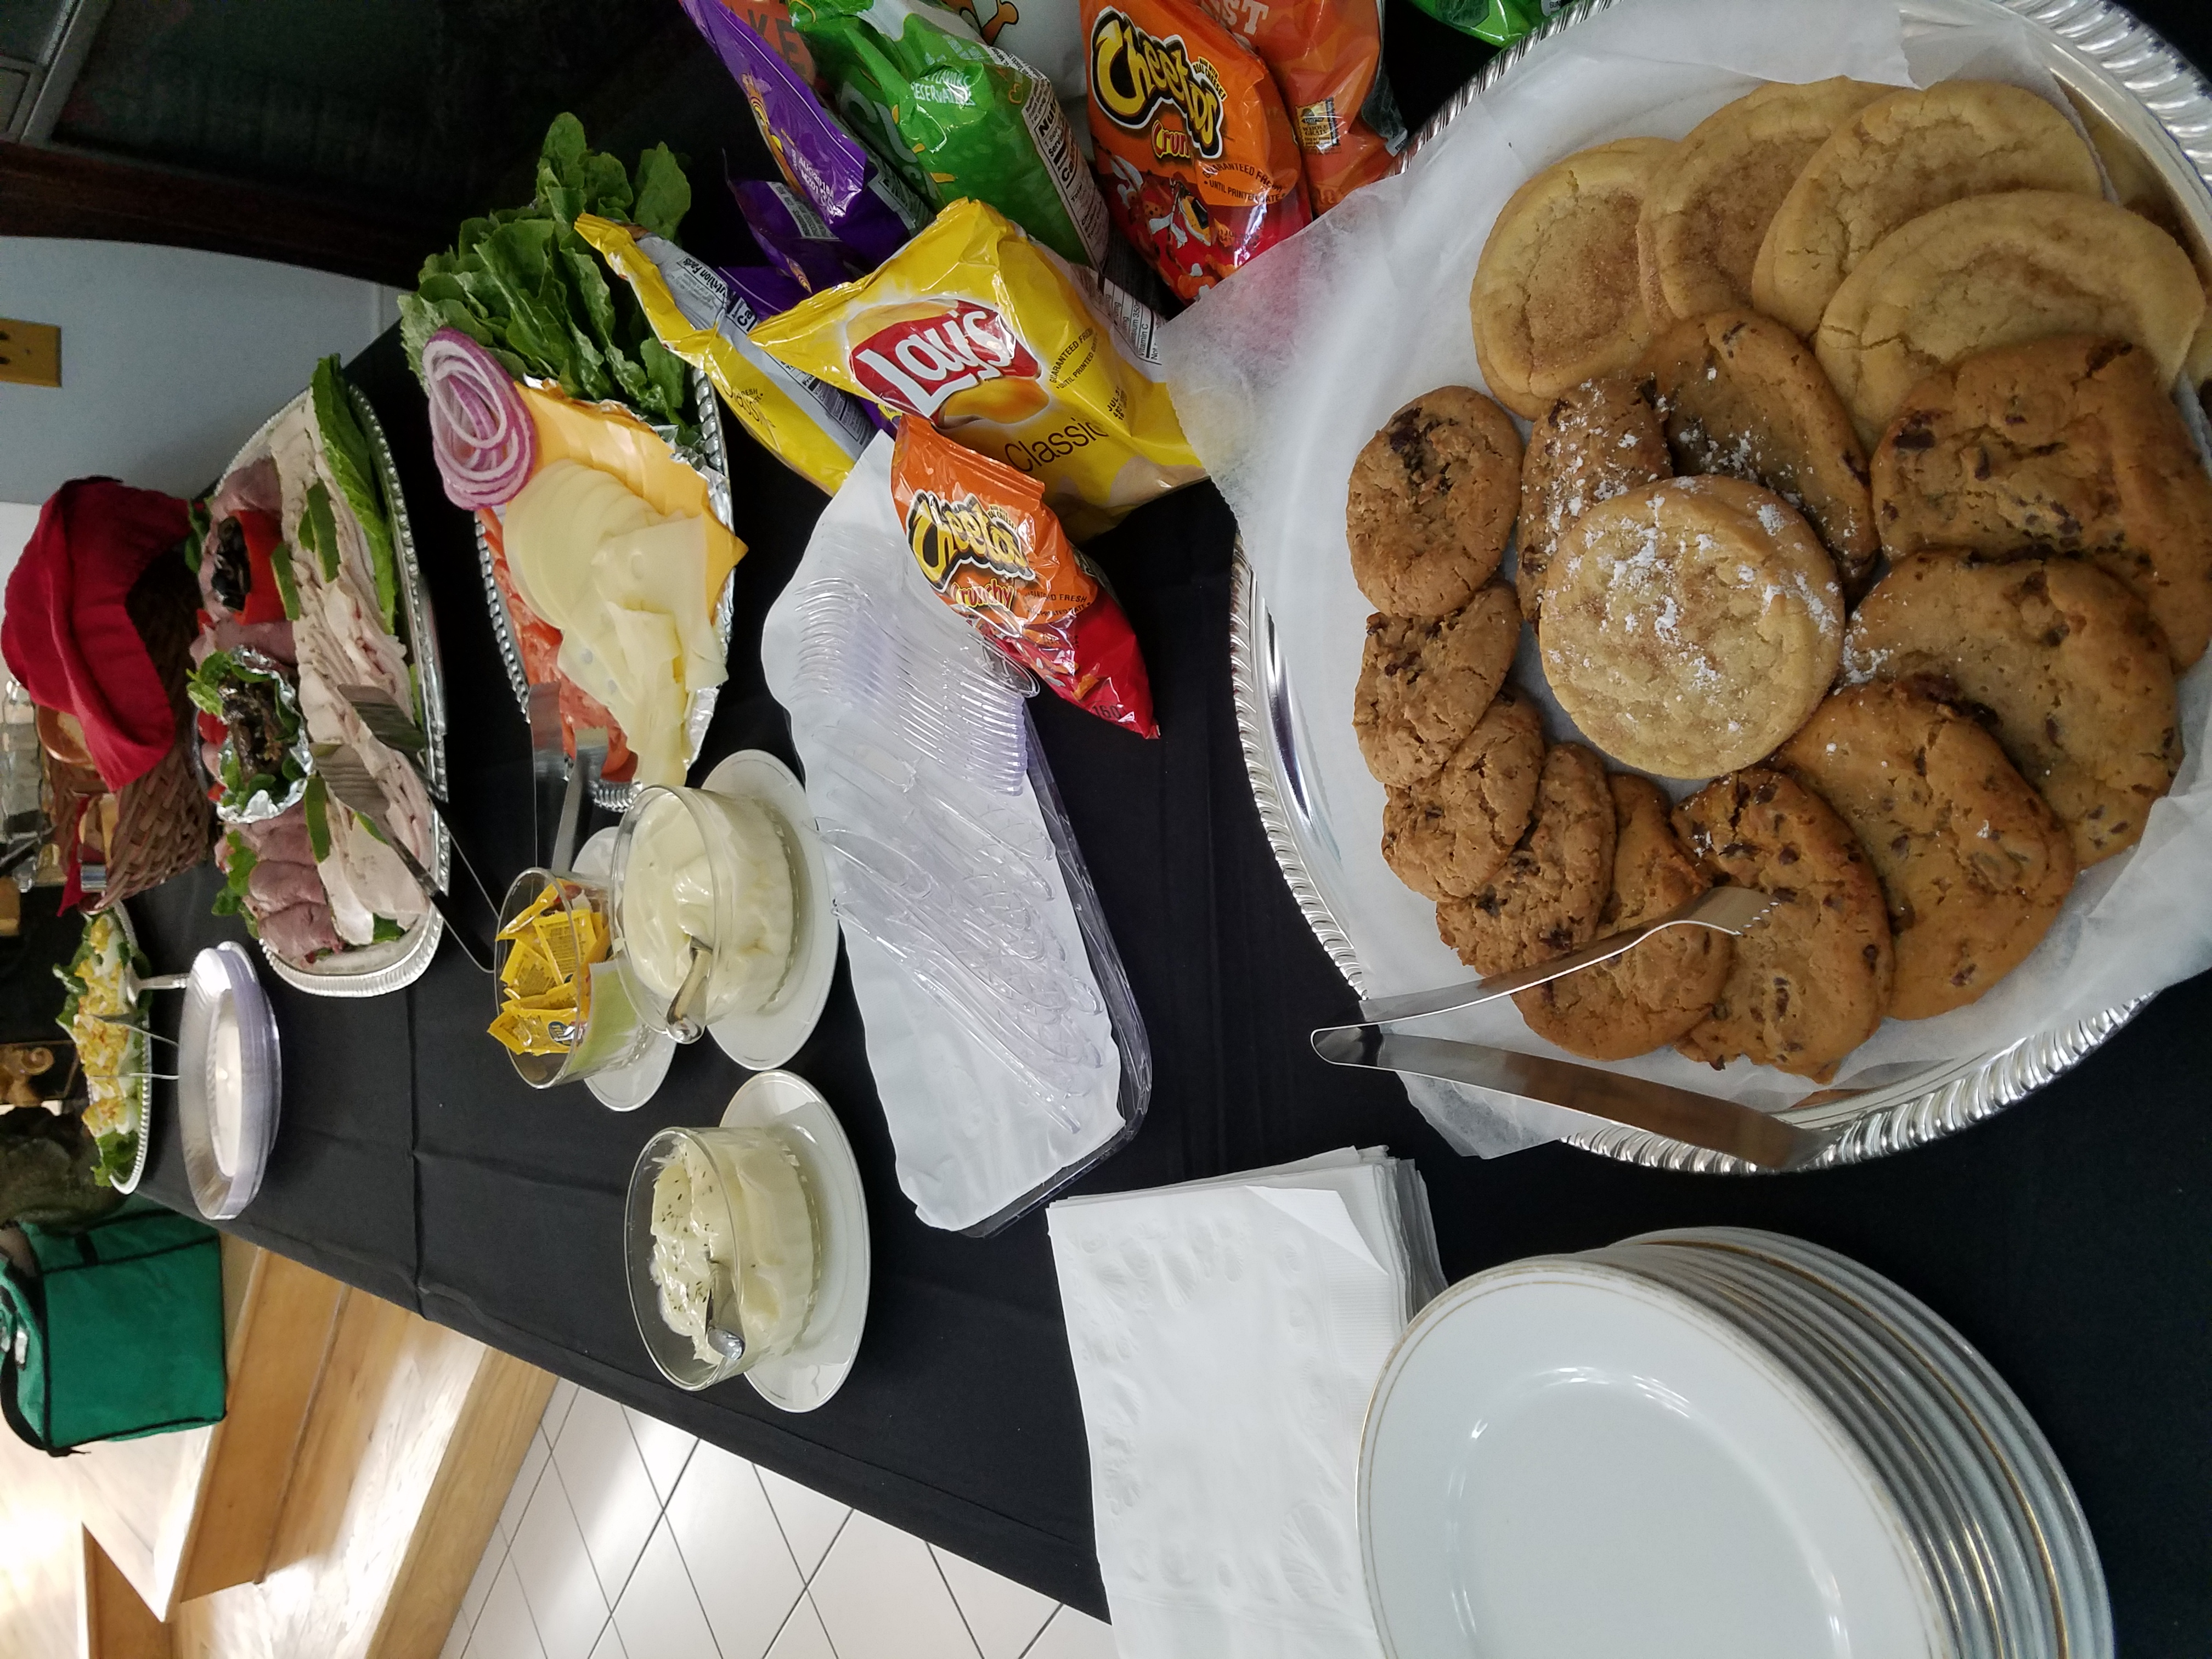 Cookies and Deli Table